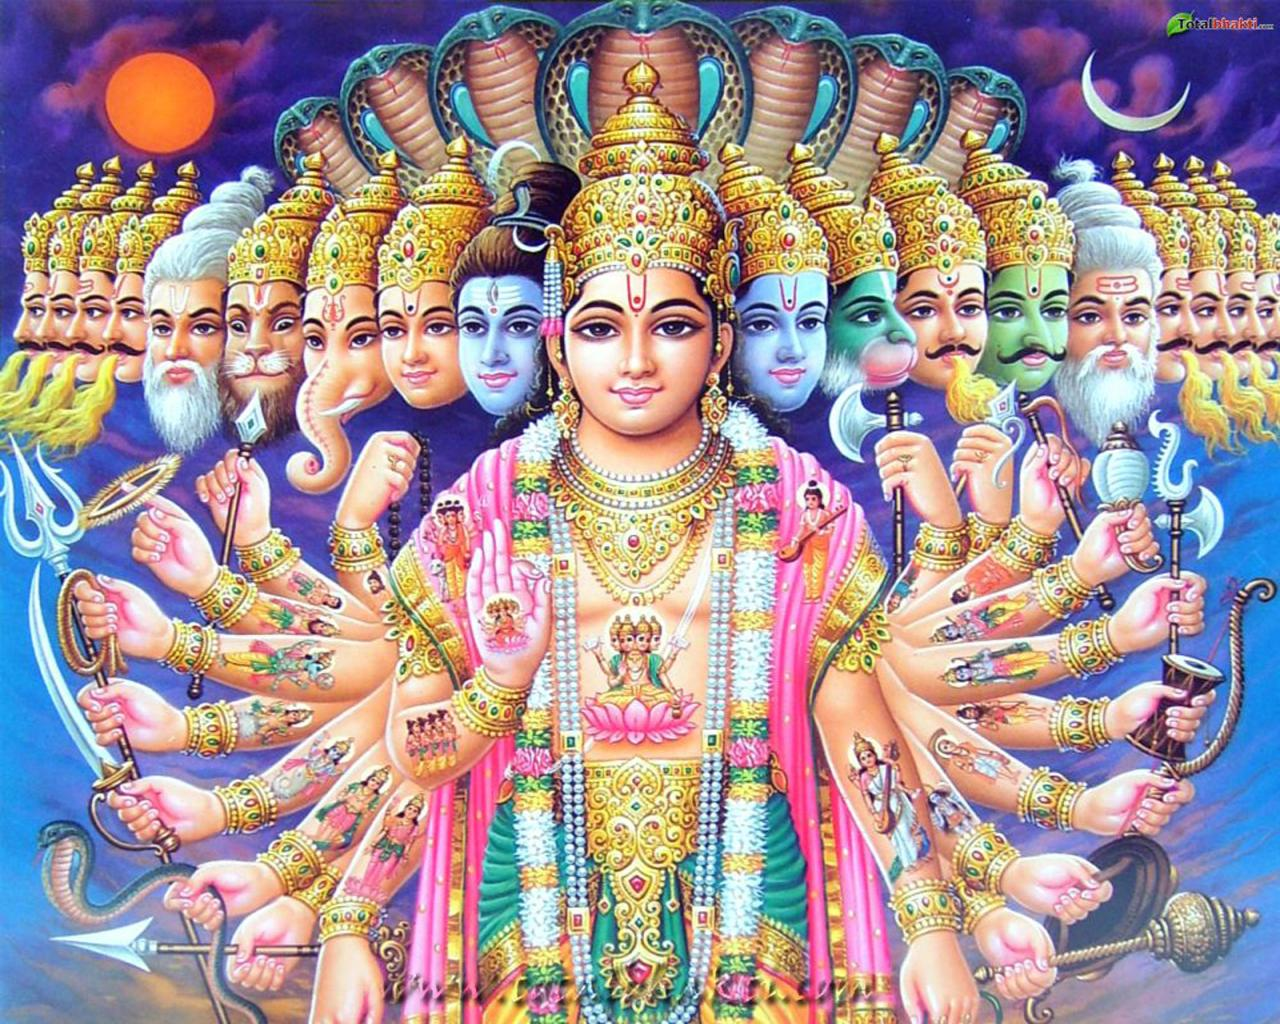 hinduism buddhism in india Both religions originated in the indian subcontinent — hinduism about 3,000 years ago and si sikhism vs buddhism judaism vs hinduism vs sikhism anonymous.